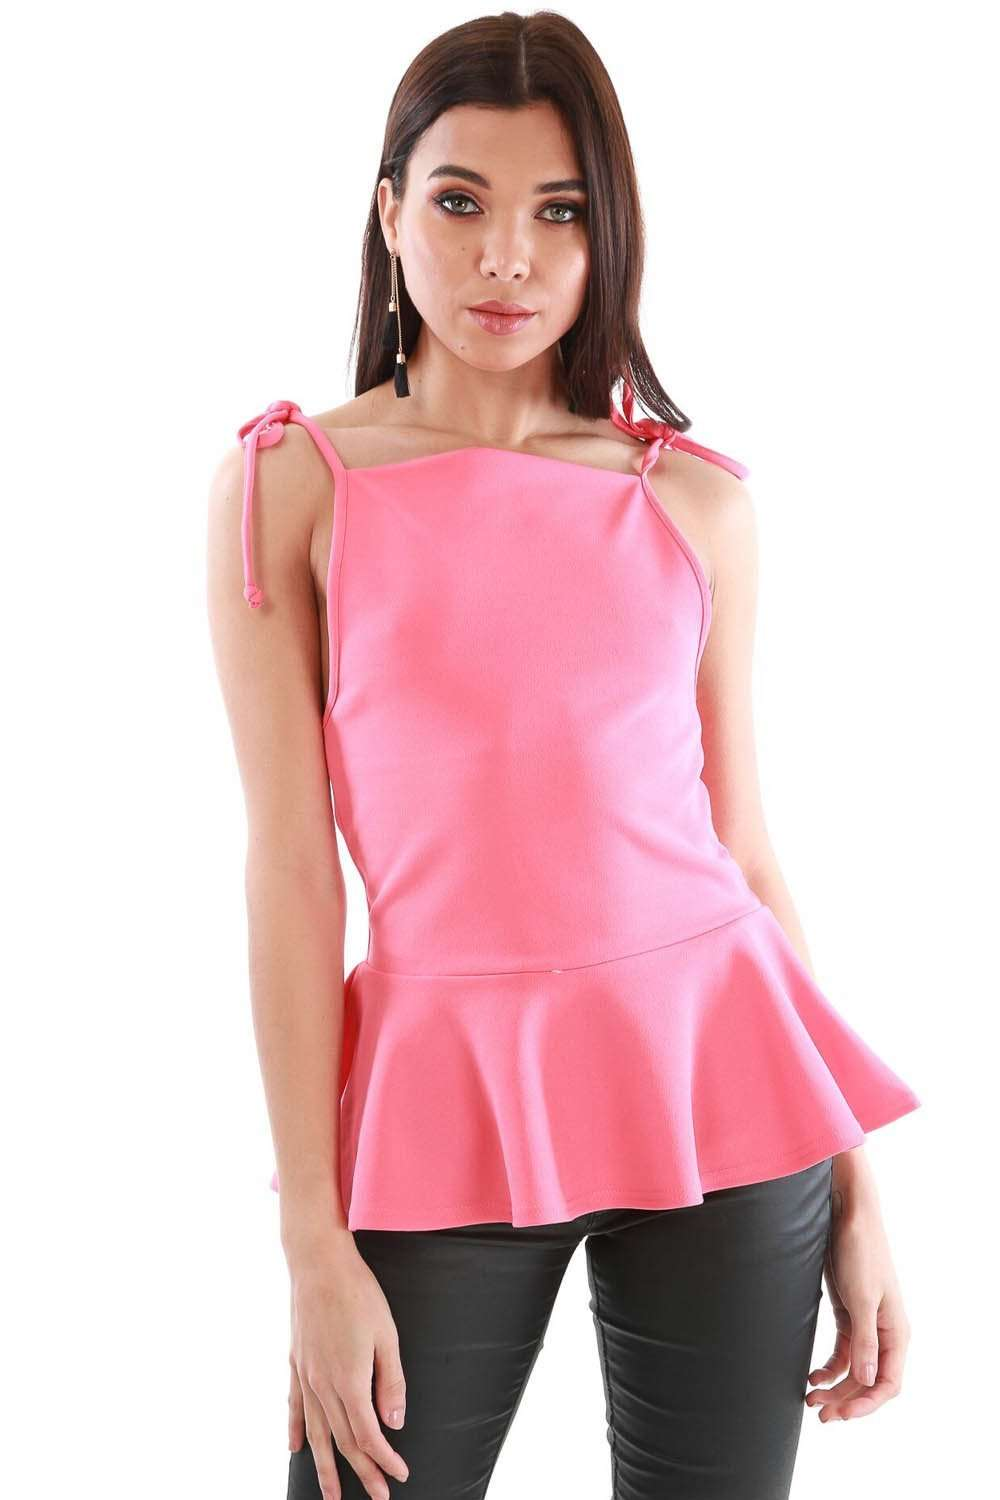 Eloise Strappy Square Neck Peplum Frill Top - bejealous-com